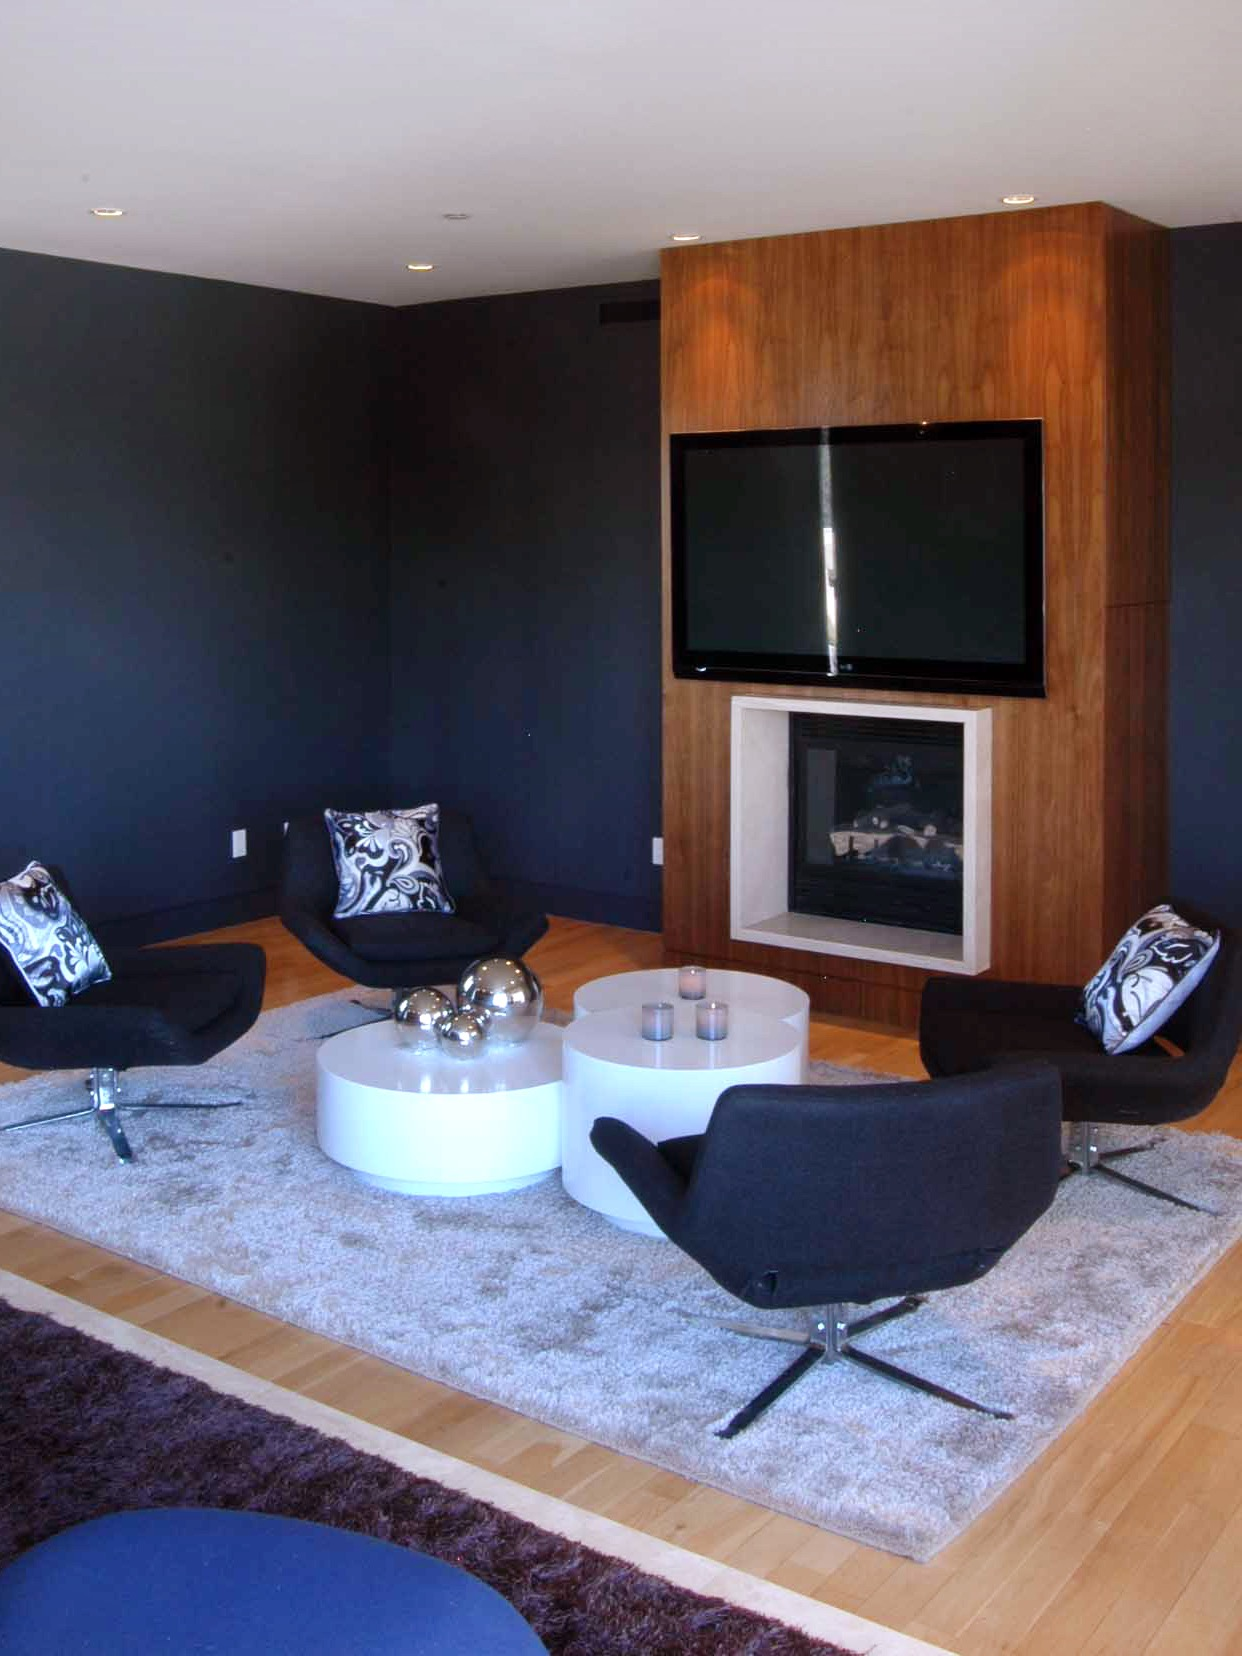 Contemporary Living Room With Futuristic Chairs And Modern Fireplace (Image 7 of 31)